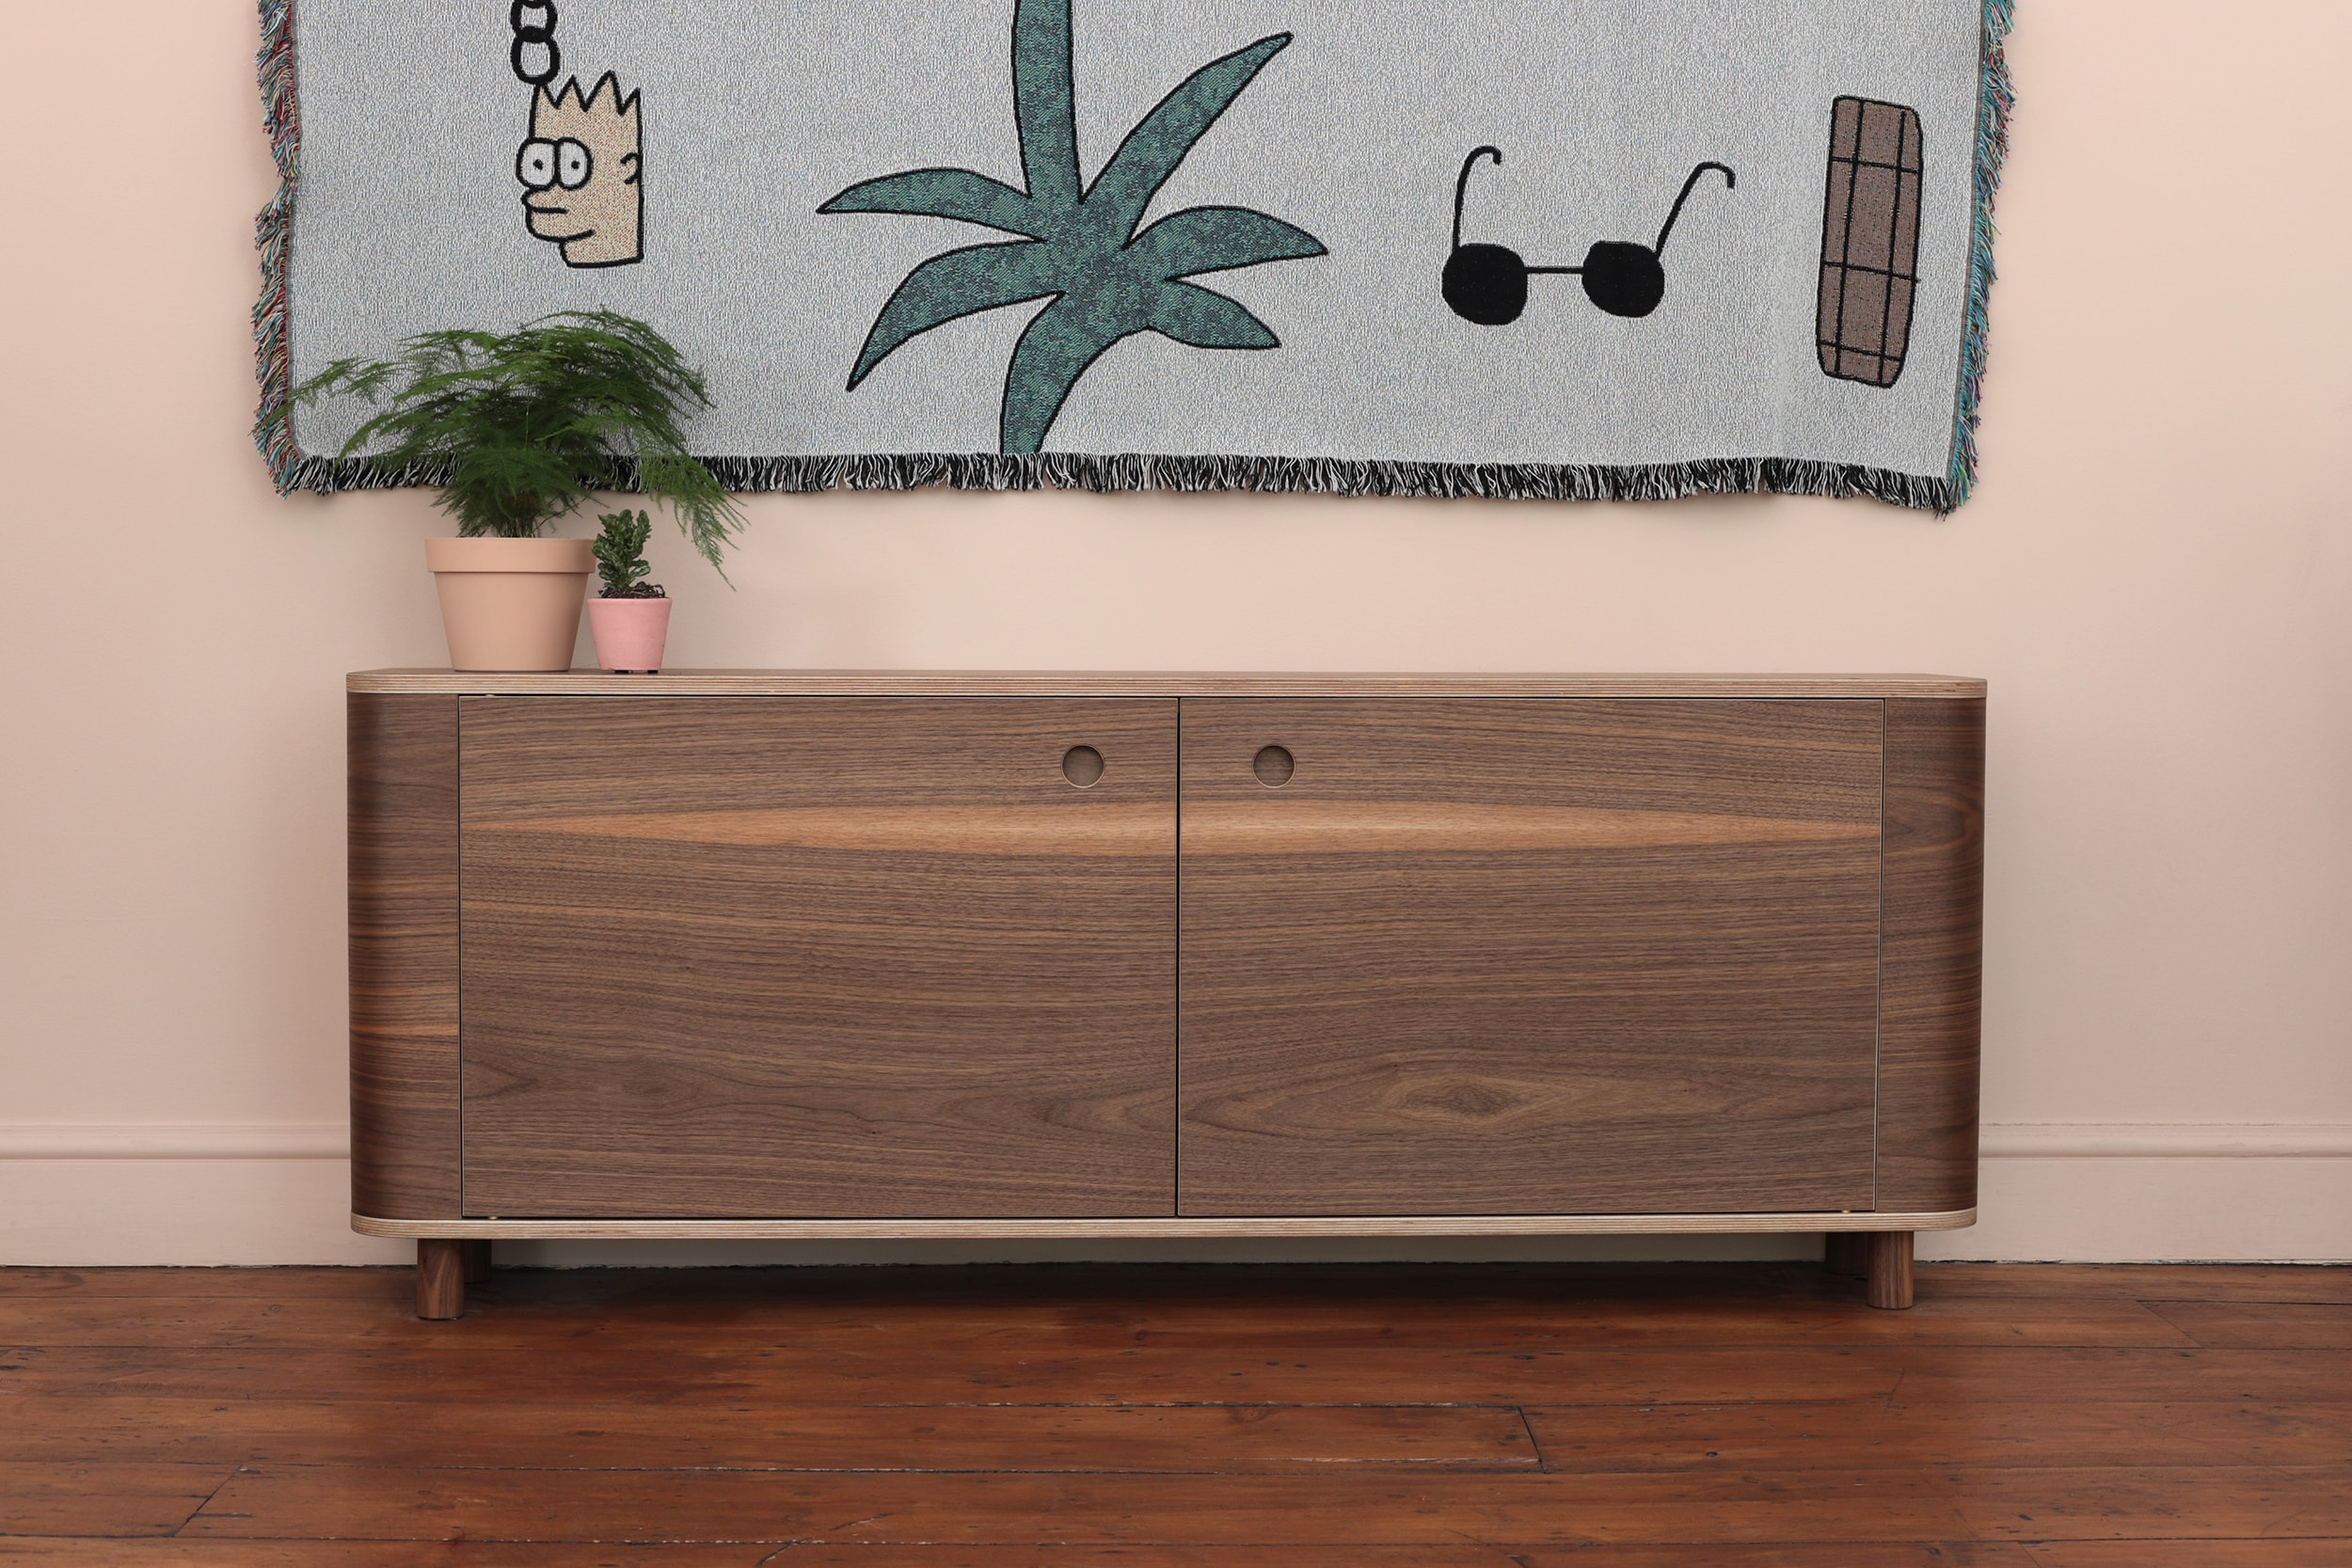 Lozi's bespoke one of a kind sideboard specifically designed for the salon.